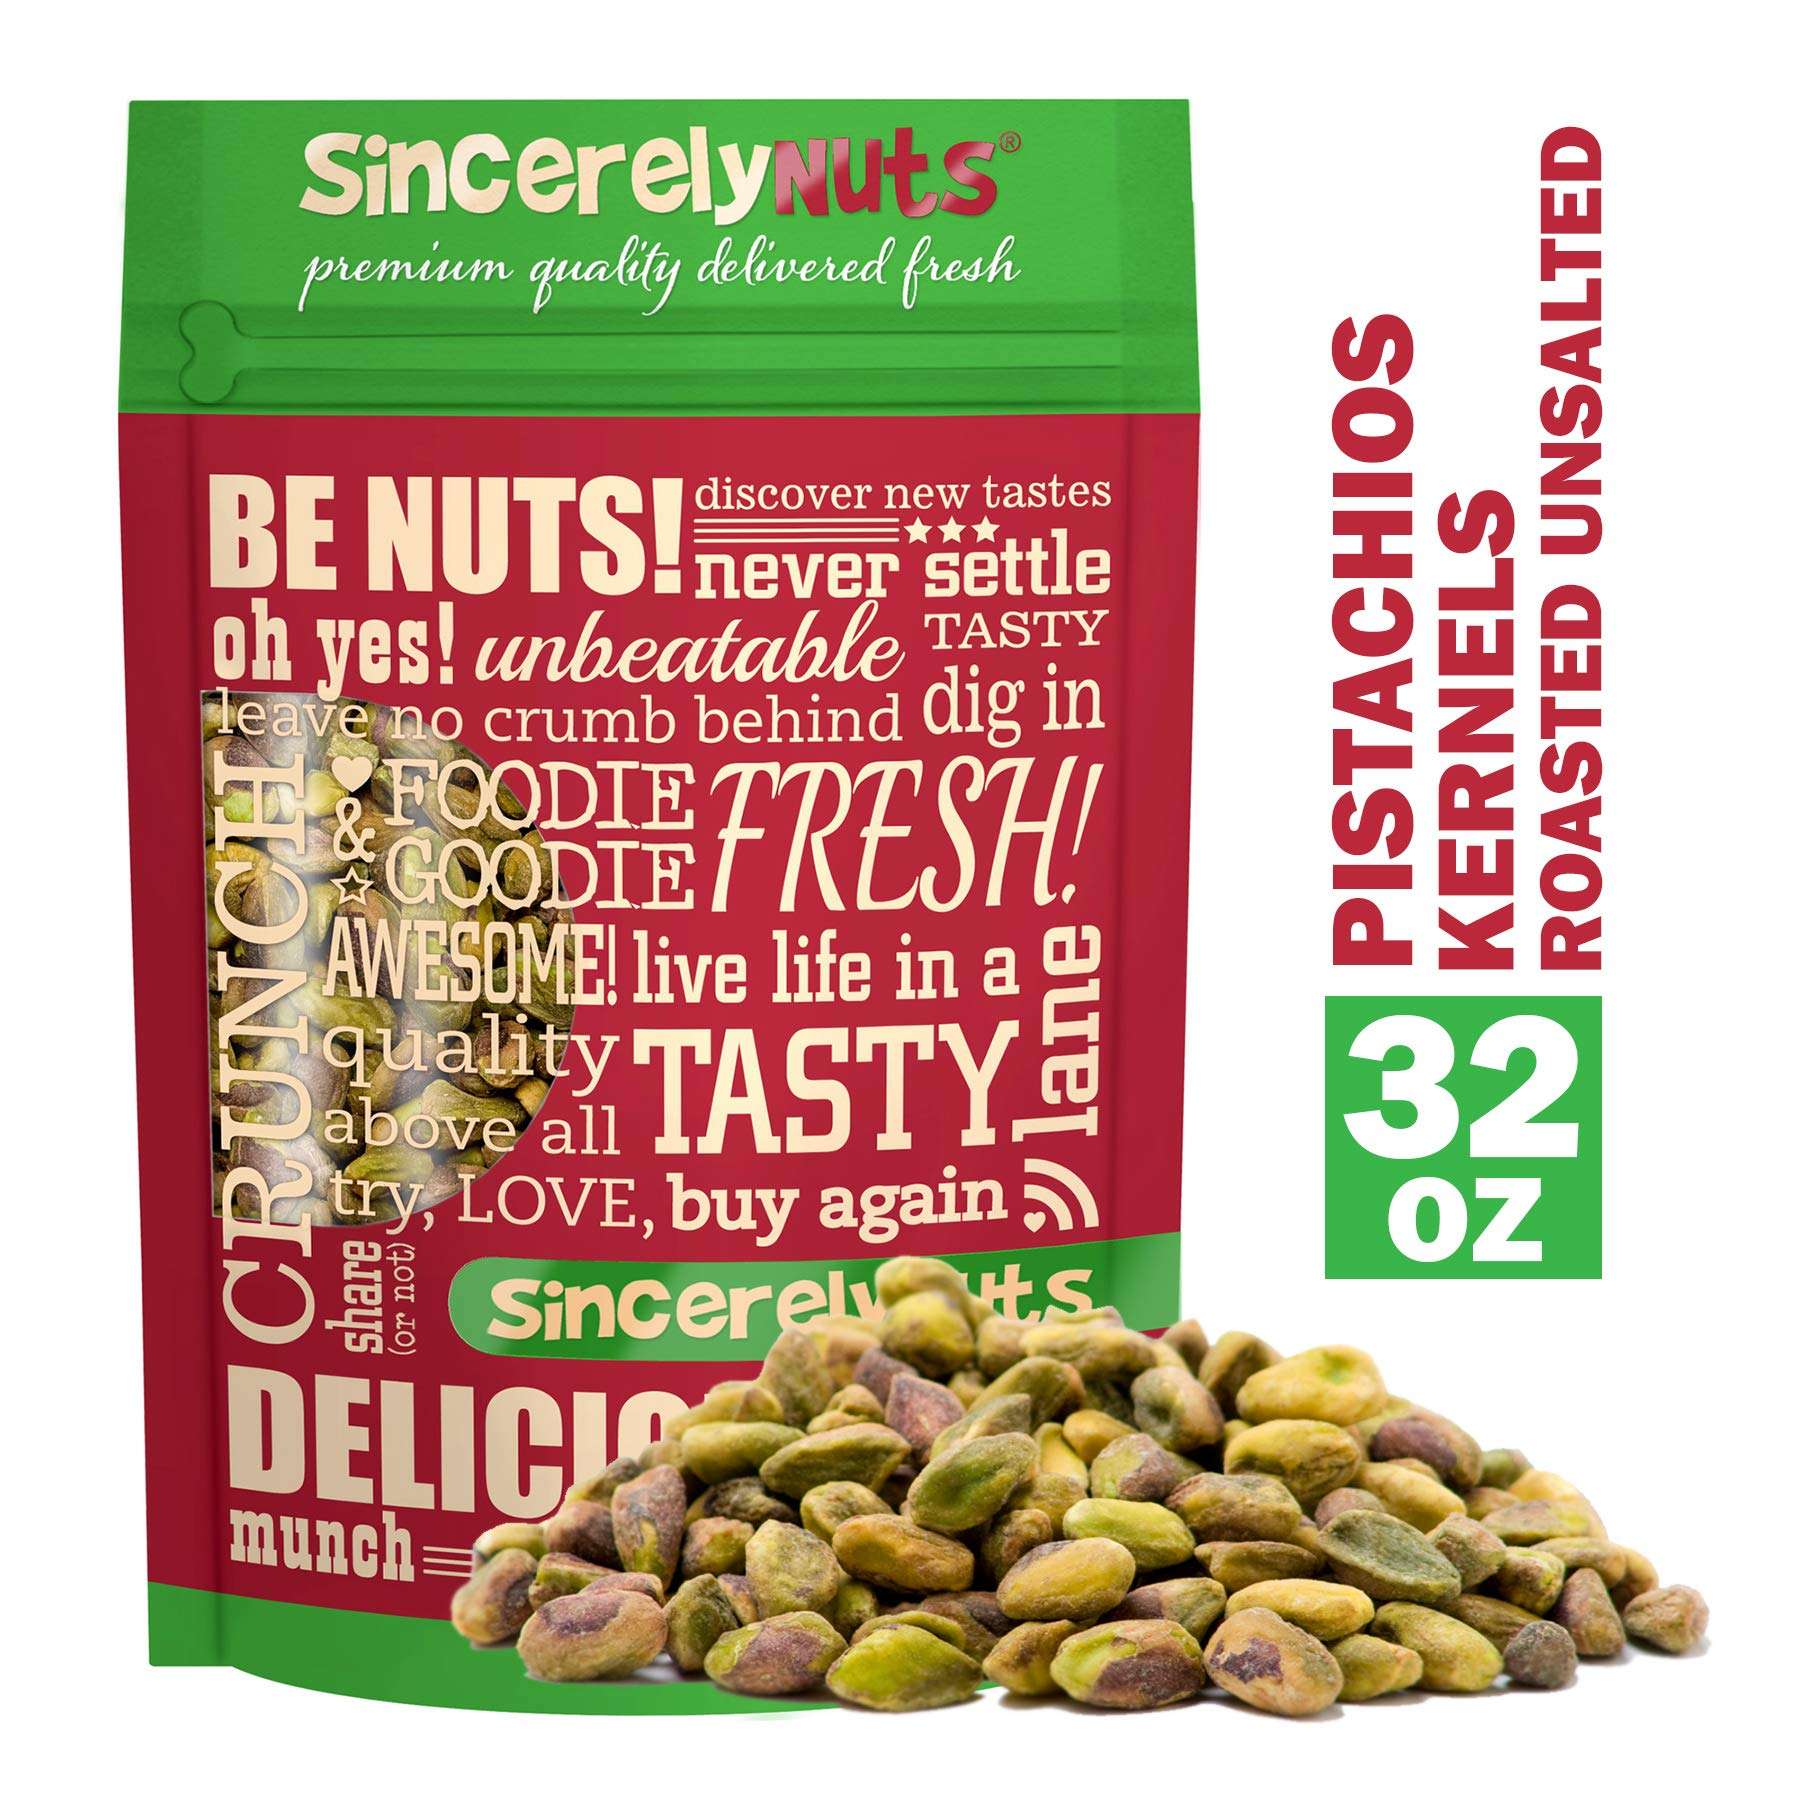 Sincerely Nuts Pistachios Roasted & Unsalted Kernels (No Shell) - 2 Lb. Bag - Healthy Snack Food | Great for Cooking | Source of Fiber, Protein & Vitamins | Gourmet | Vegan, Kosher & Gluten Free by Sincerely Nuts (Image #1)